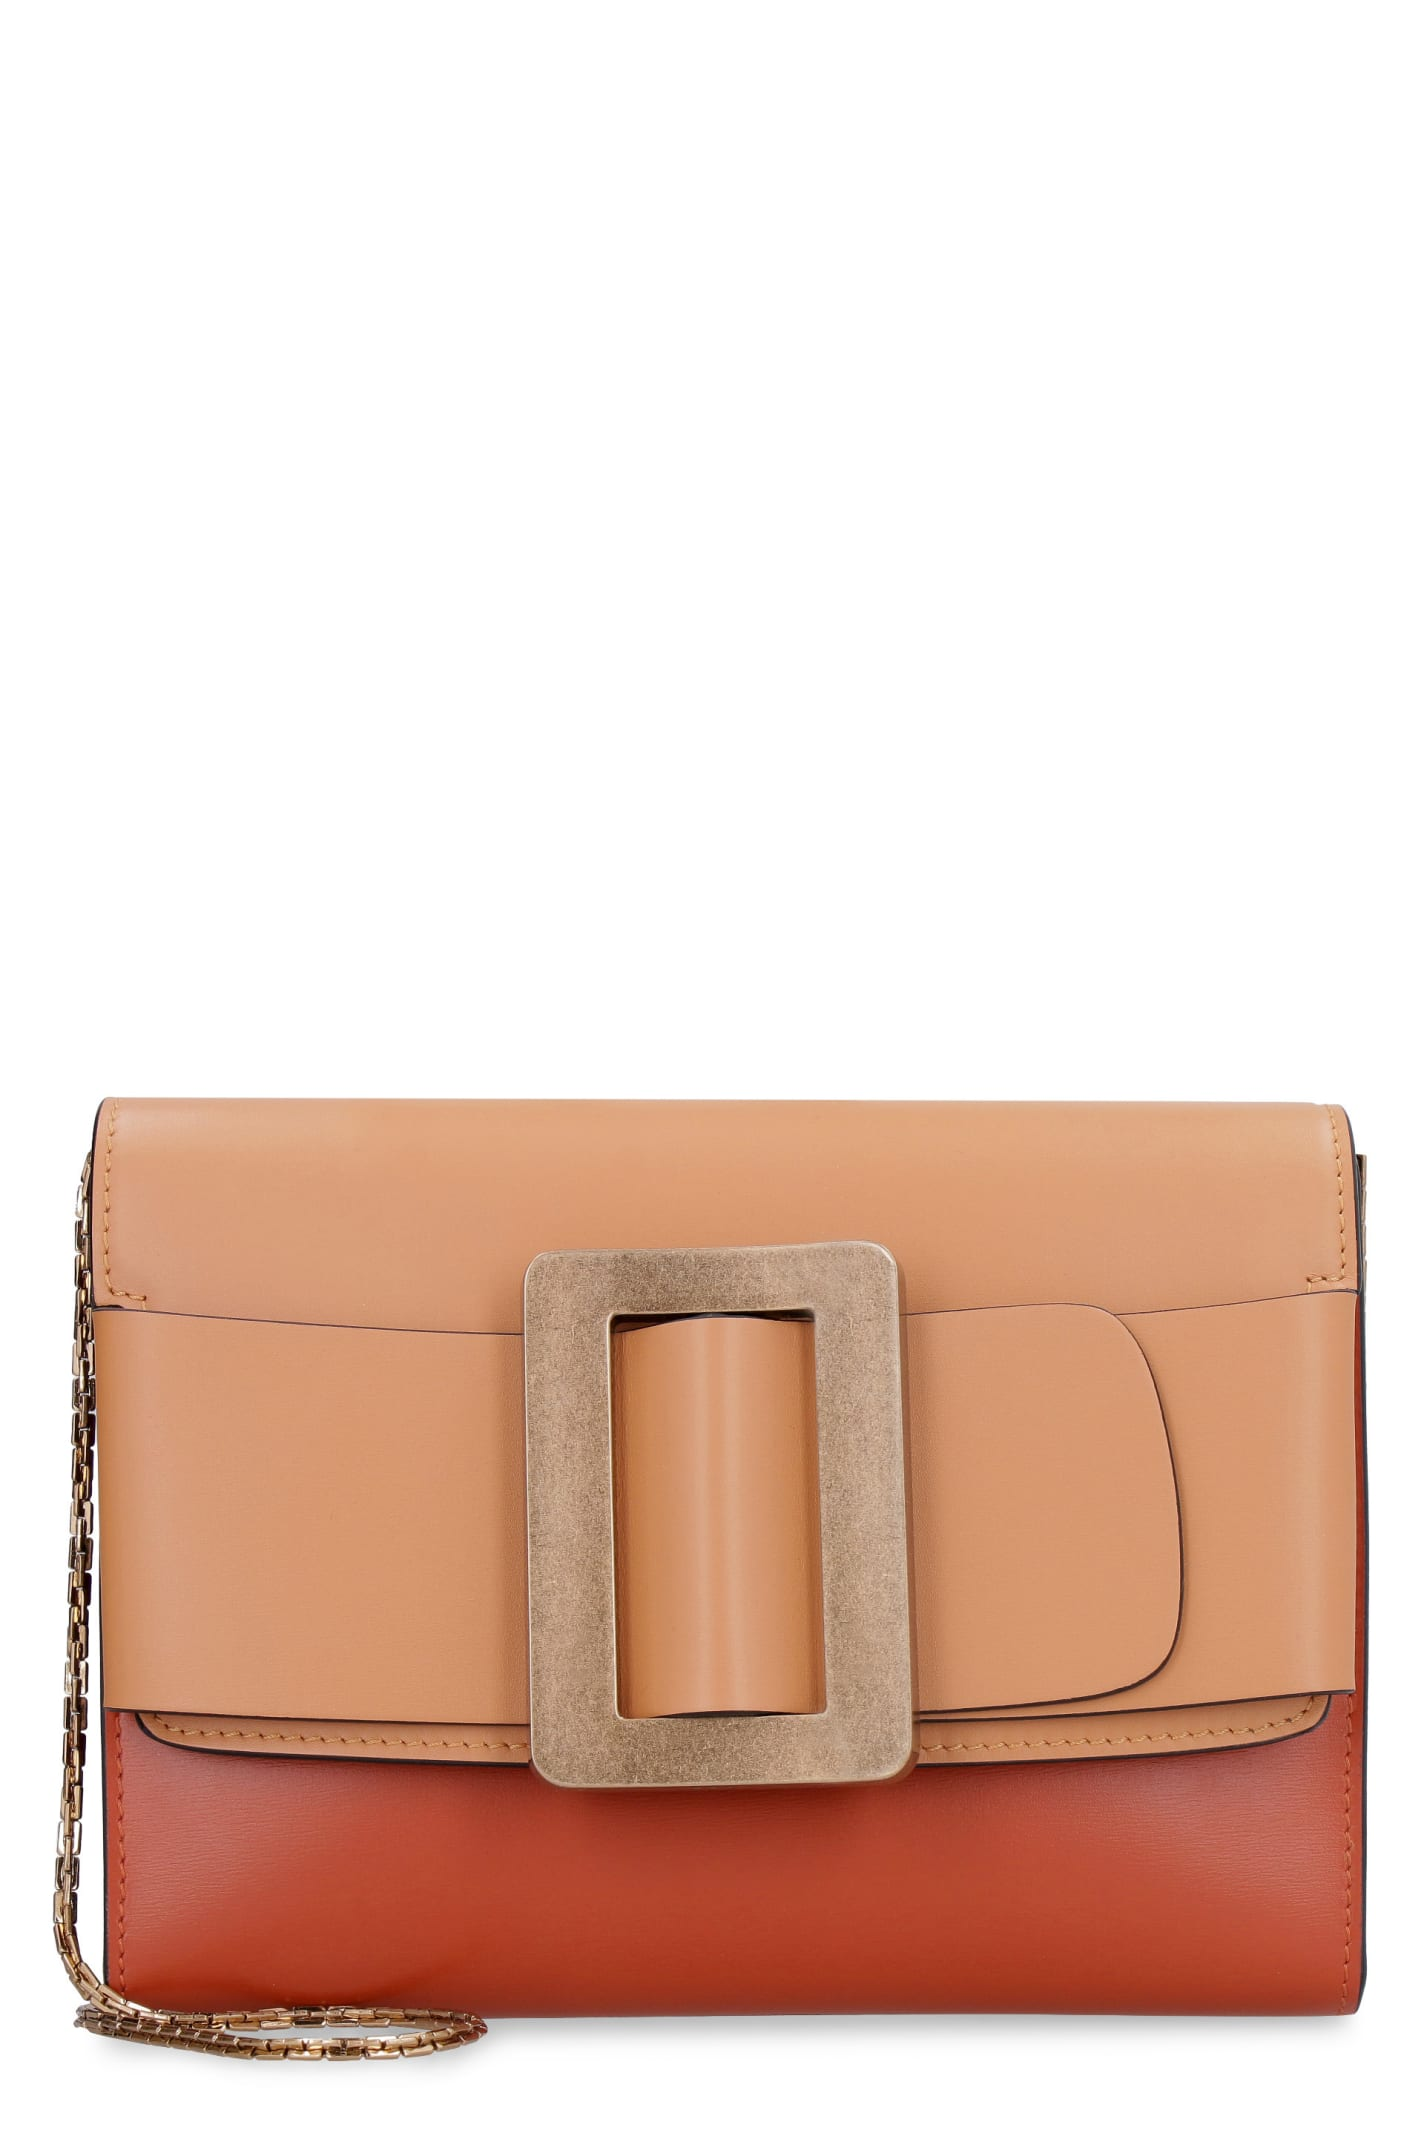 Buckle Travel Case Leather Clutch With Strap